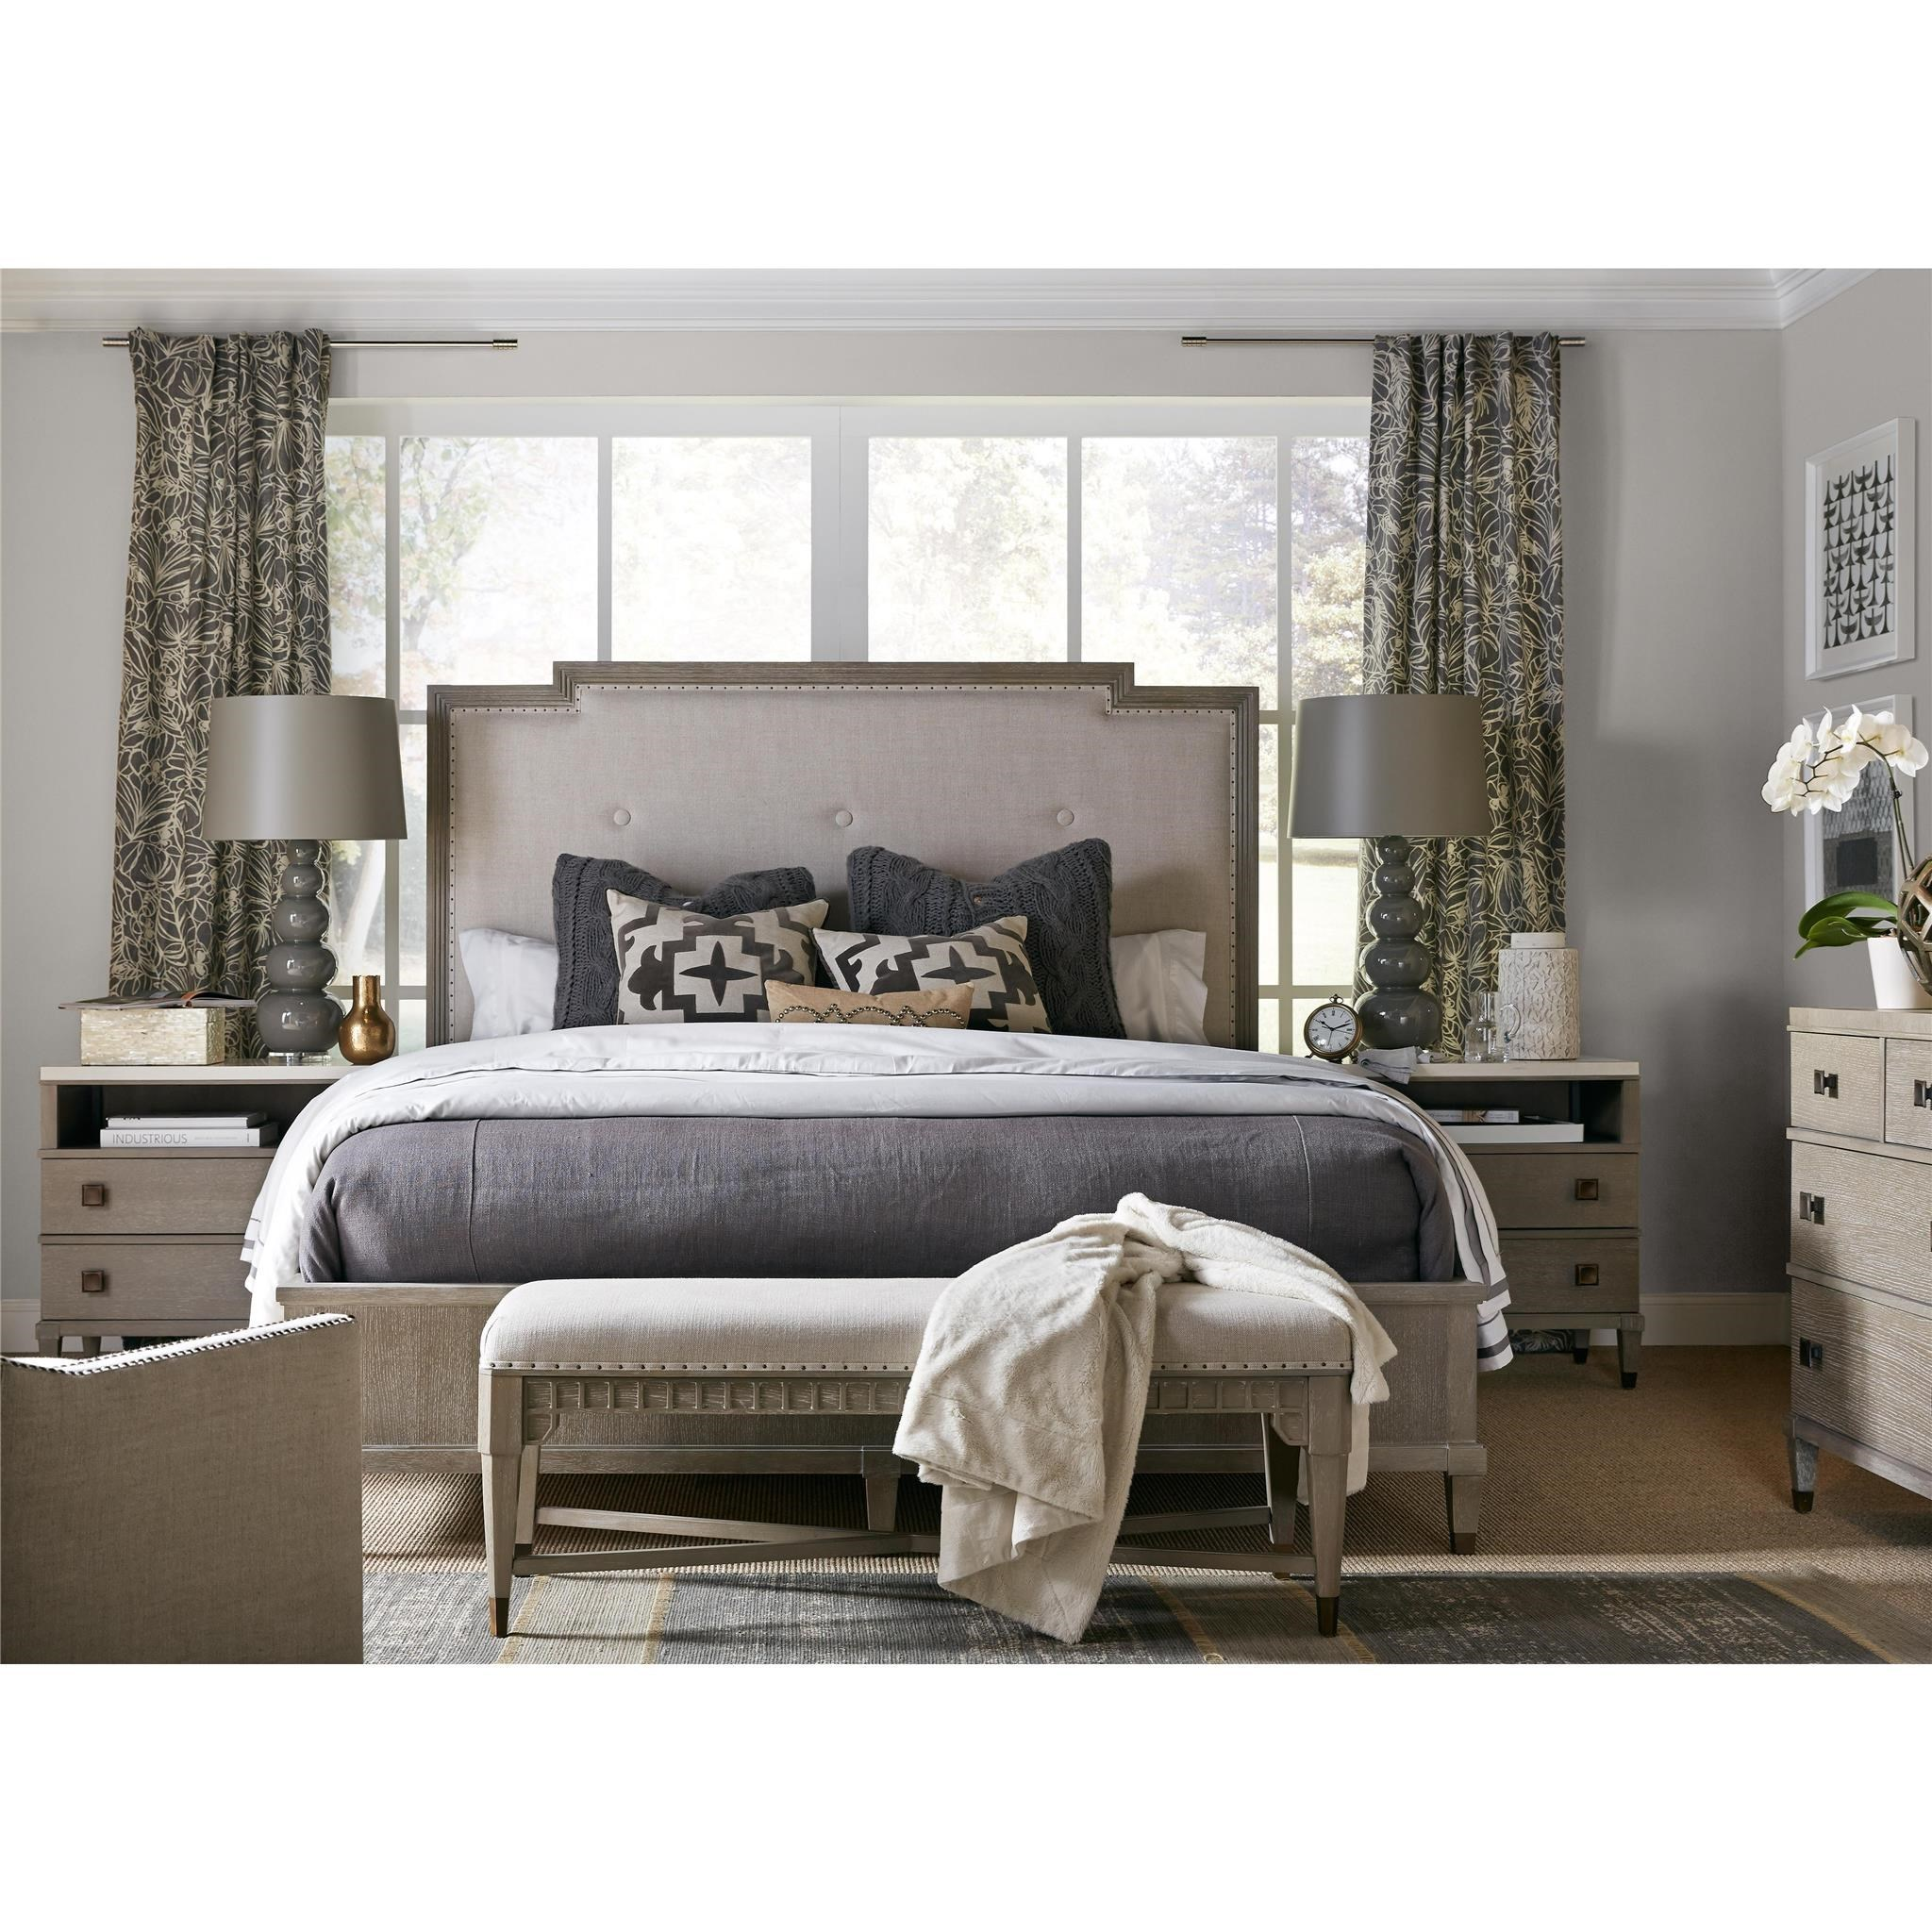 Playlist Queen Bedroom Group by Universal at Esprit Decor Home Furnishings